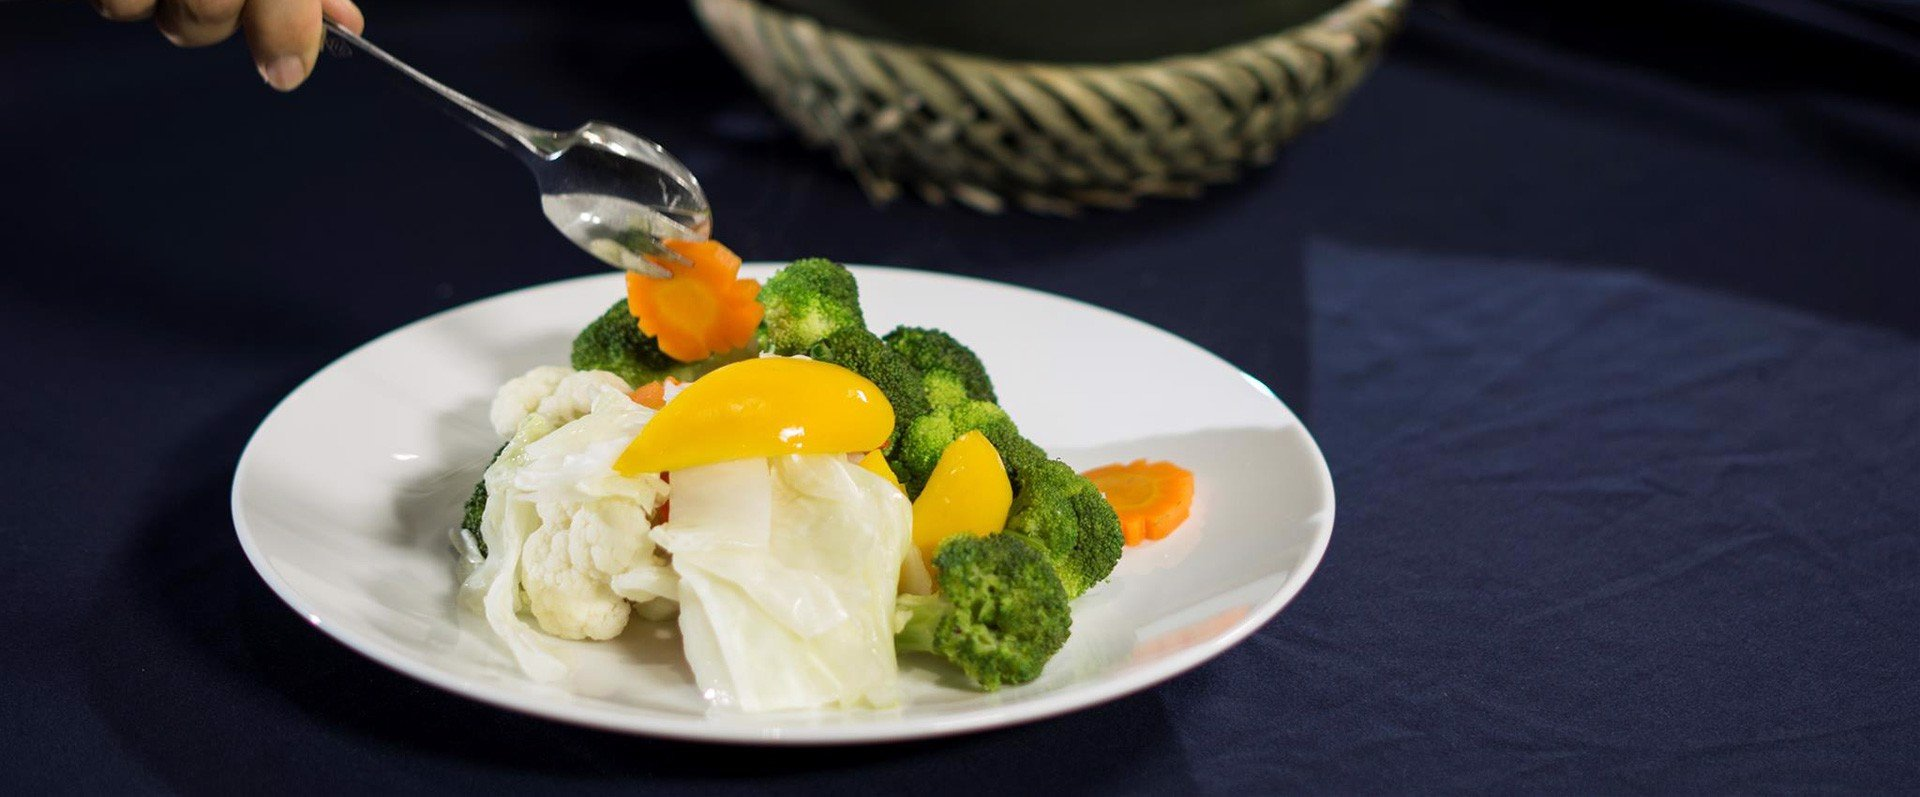 Boil fresh vegetables eye-catching without using water